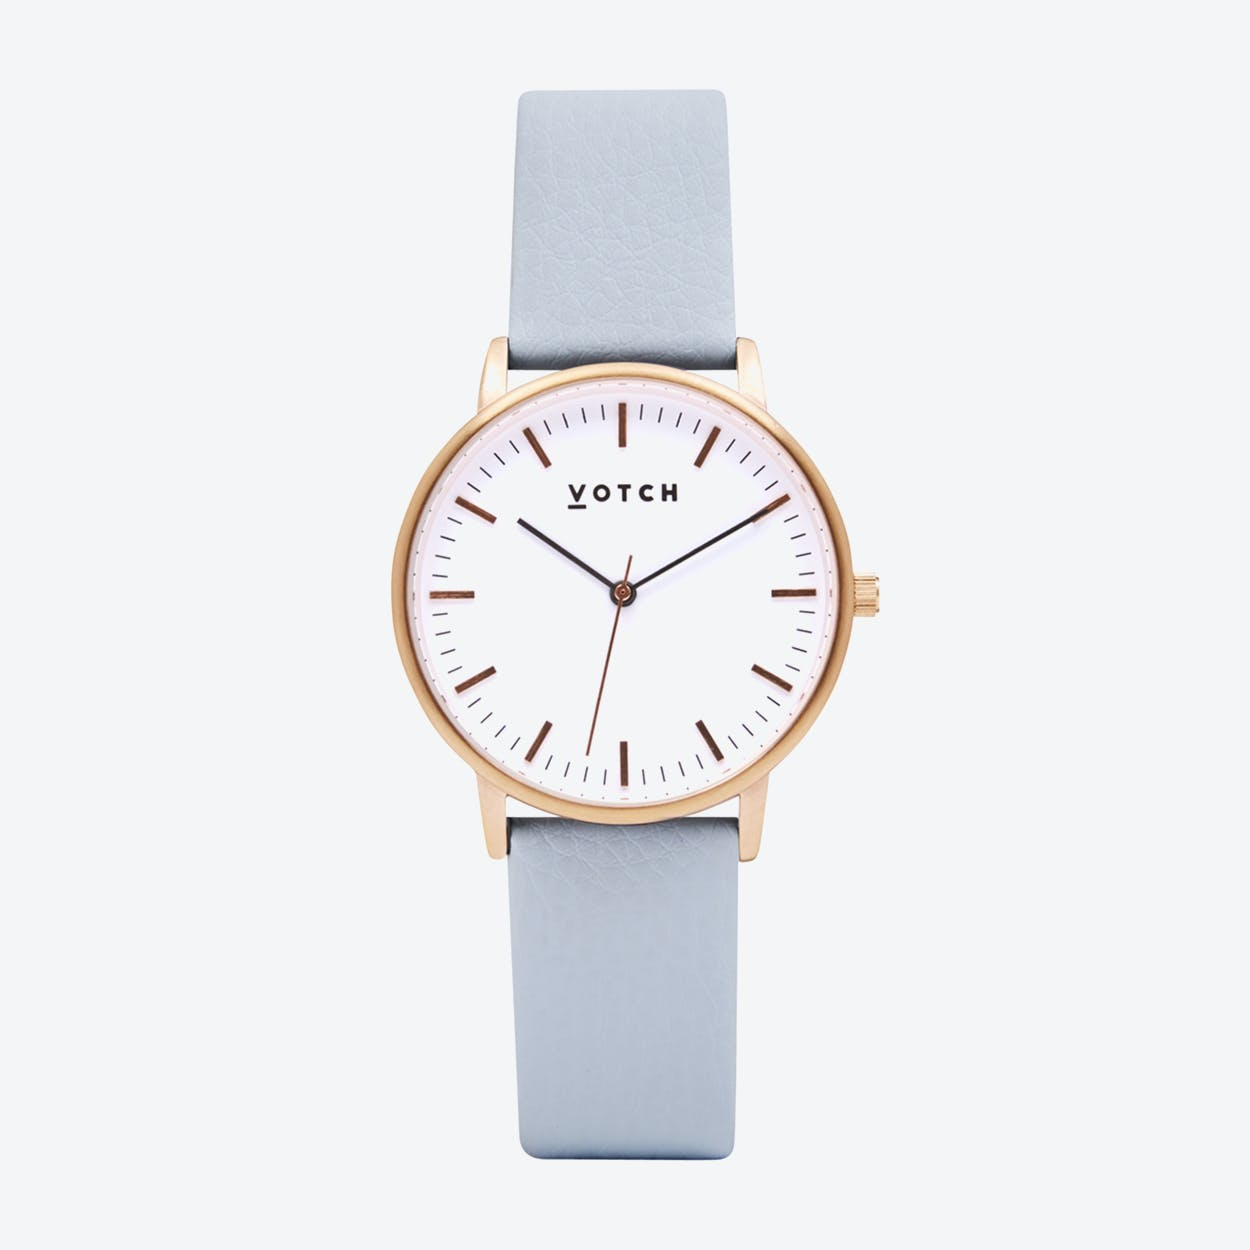 Intense Classic Watch in Rose Gold with White Face and Light Blue Vegan Leather Strap, 36mm